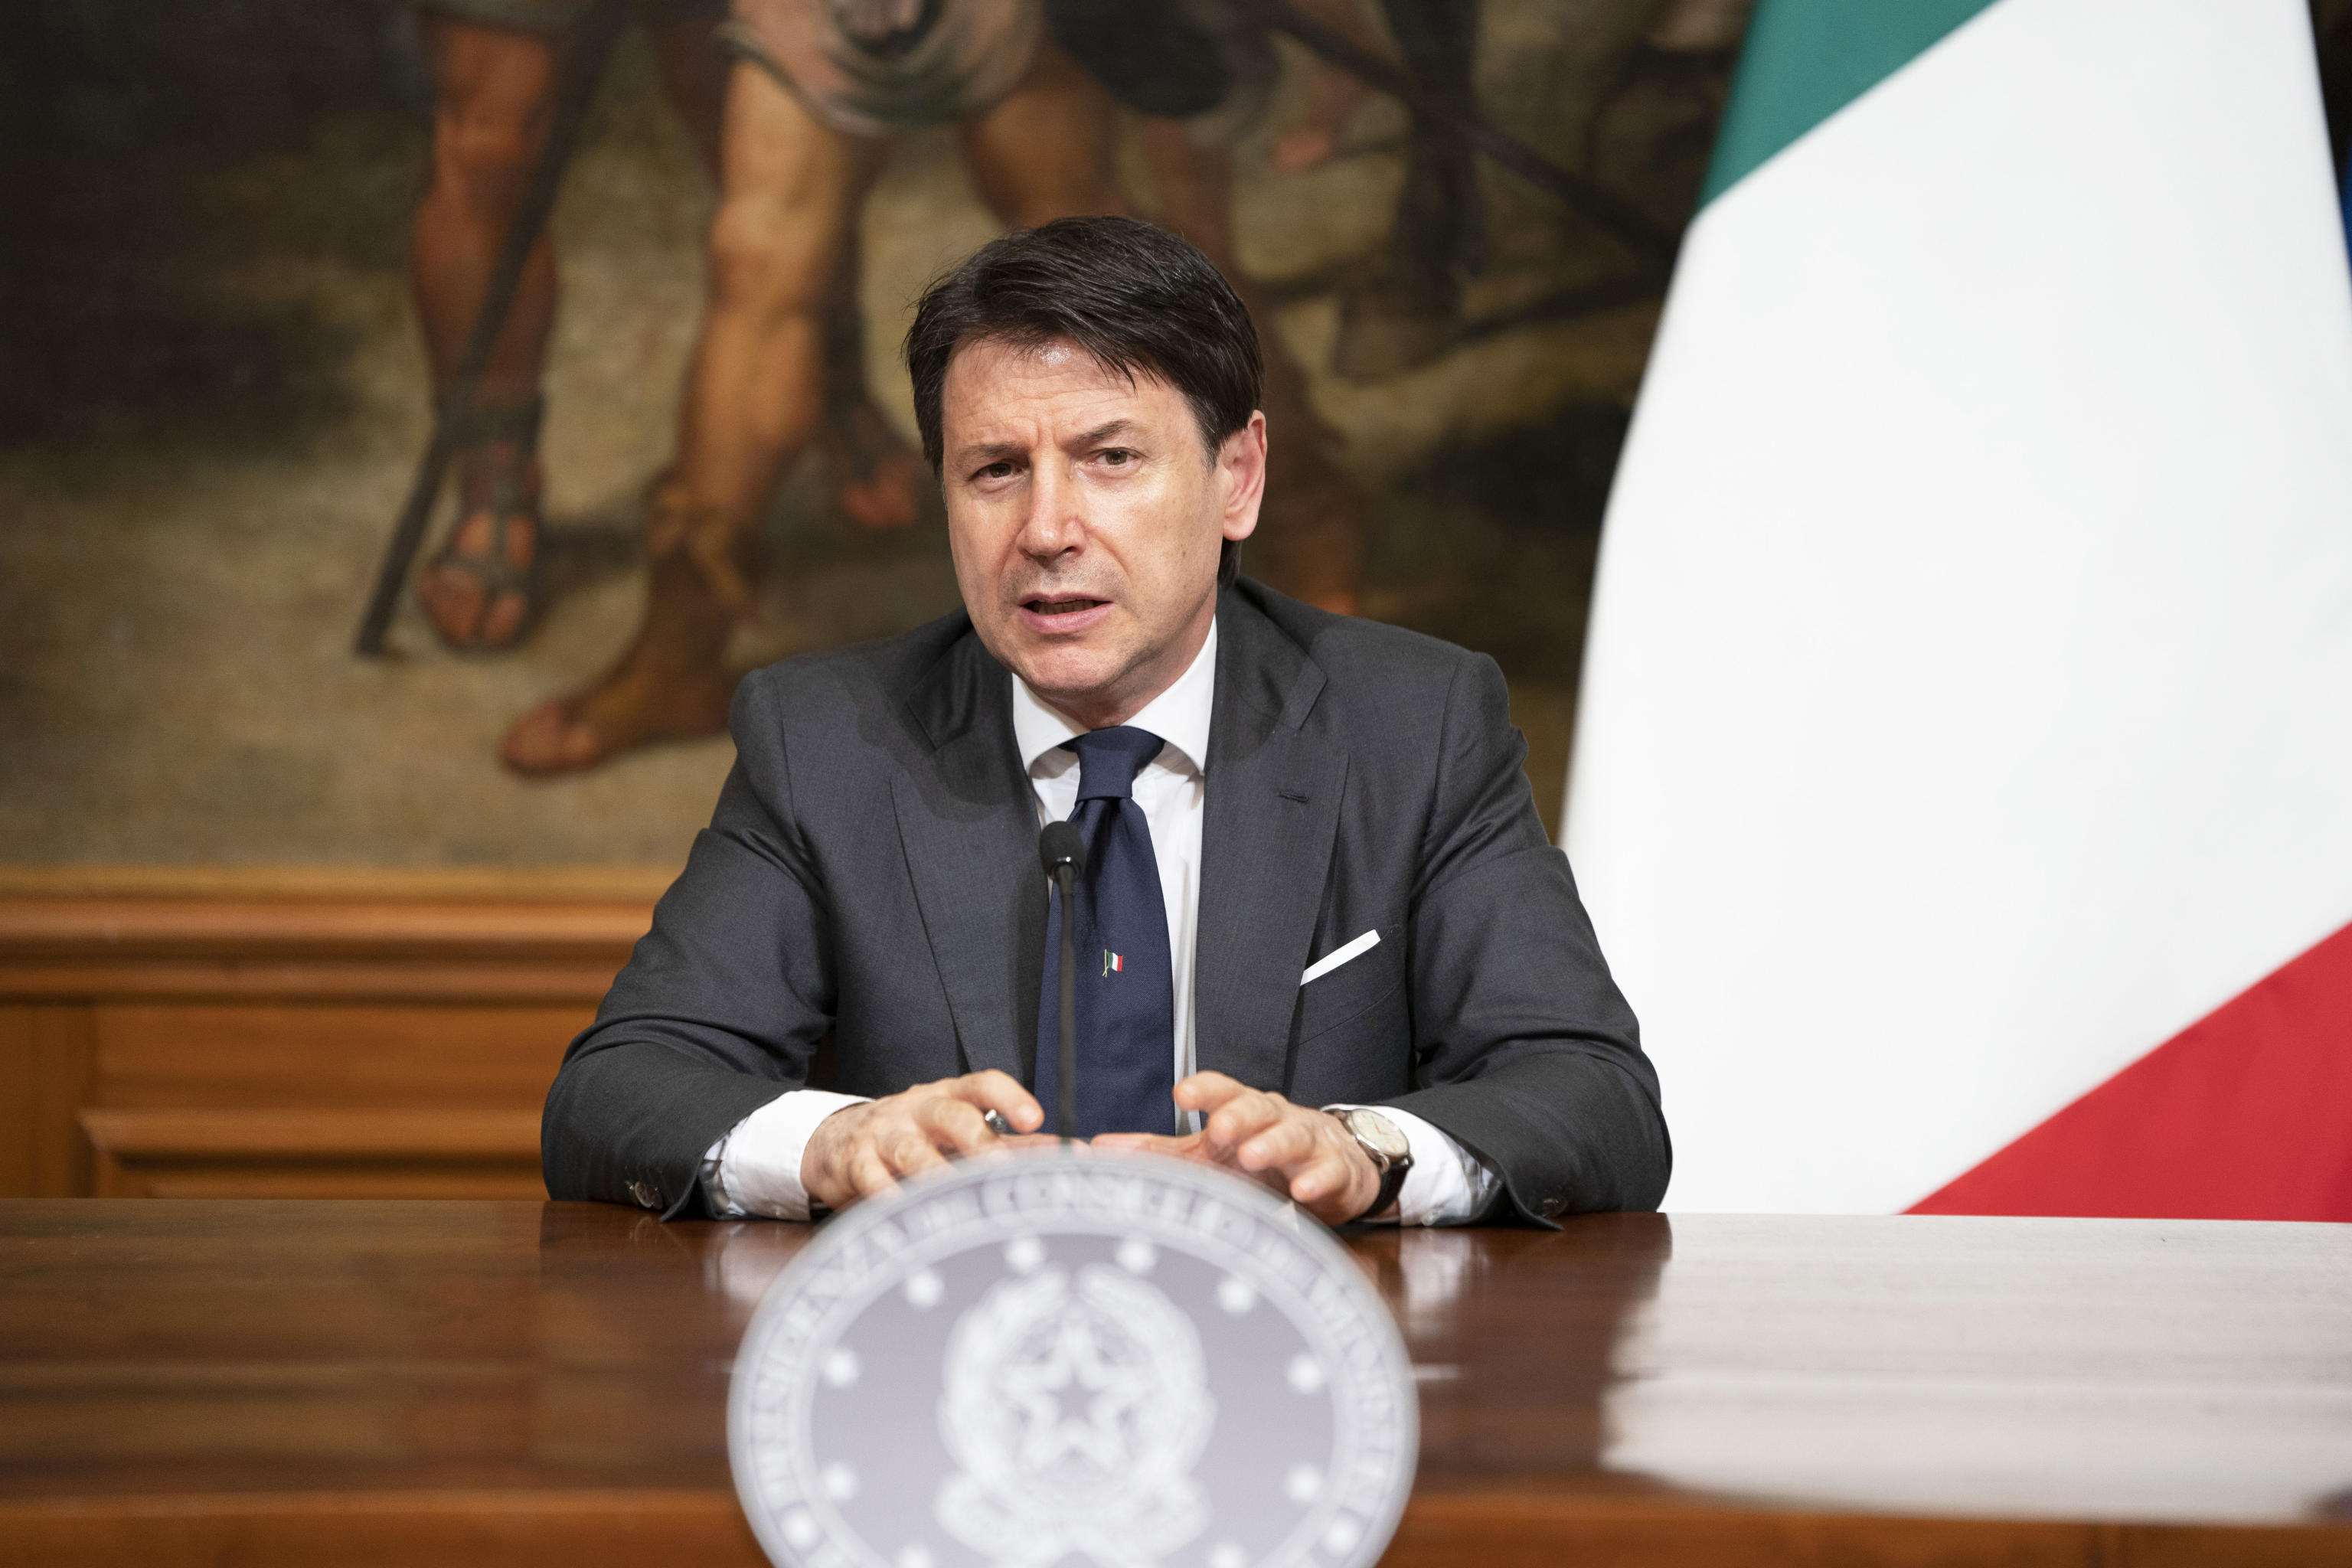 Italian Prime Minister Giuseppe Conte attends a press conference at Chigi Palace in Rome, on June 11.